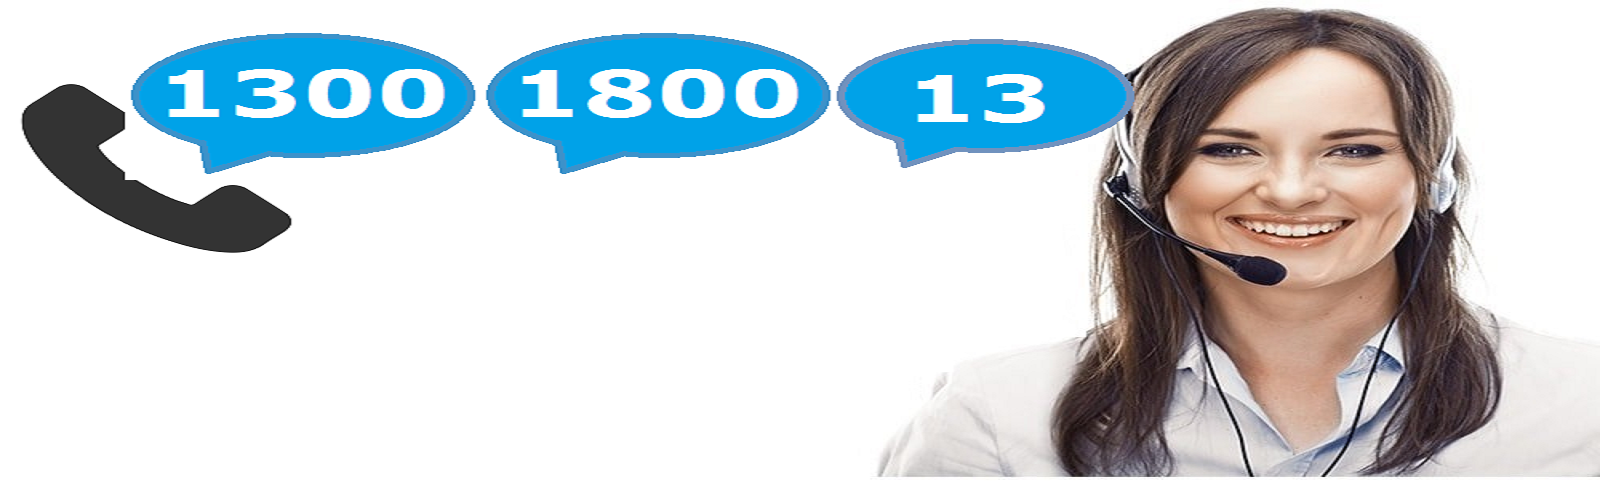 MRMS Business Toll Free Numbers